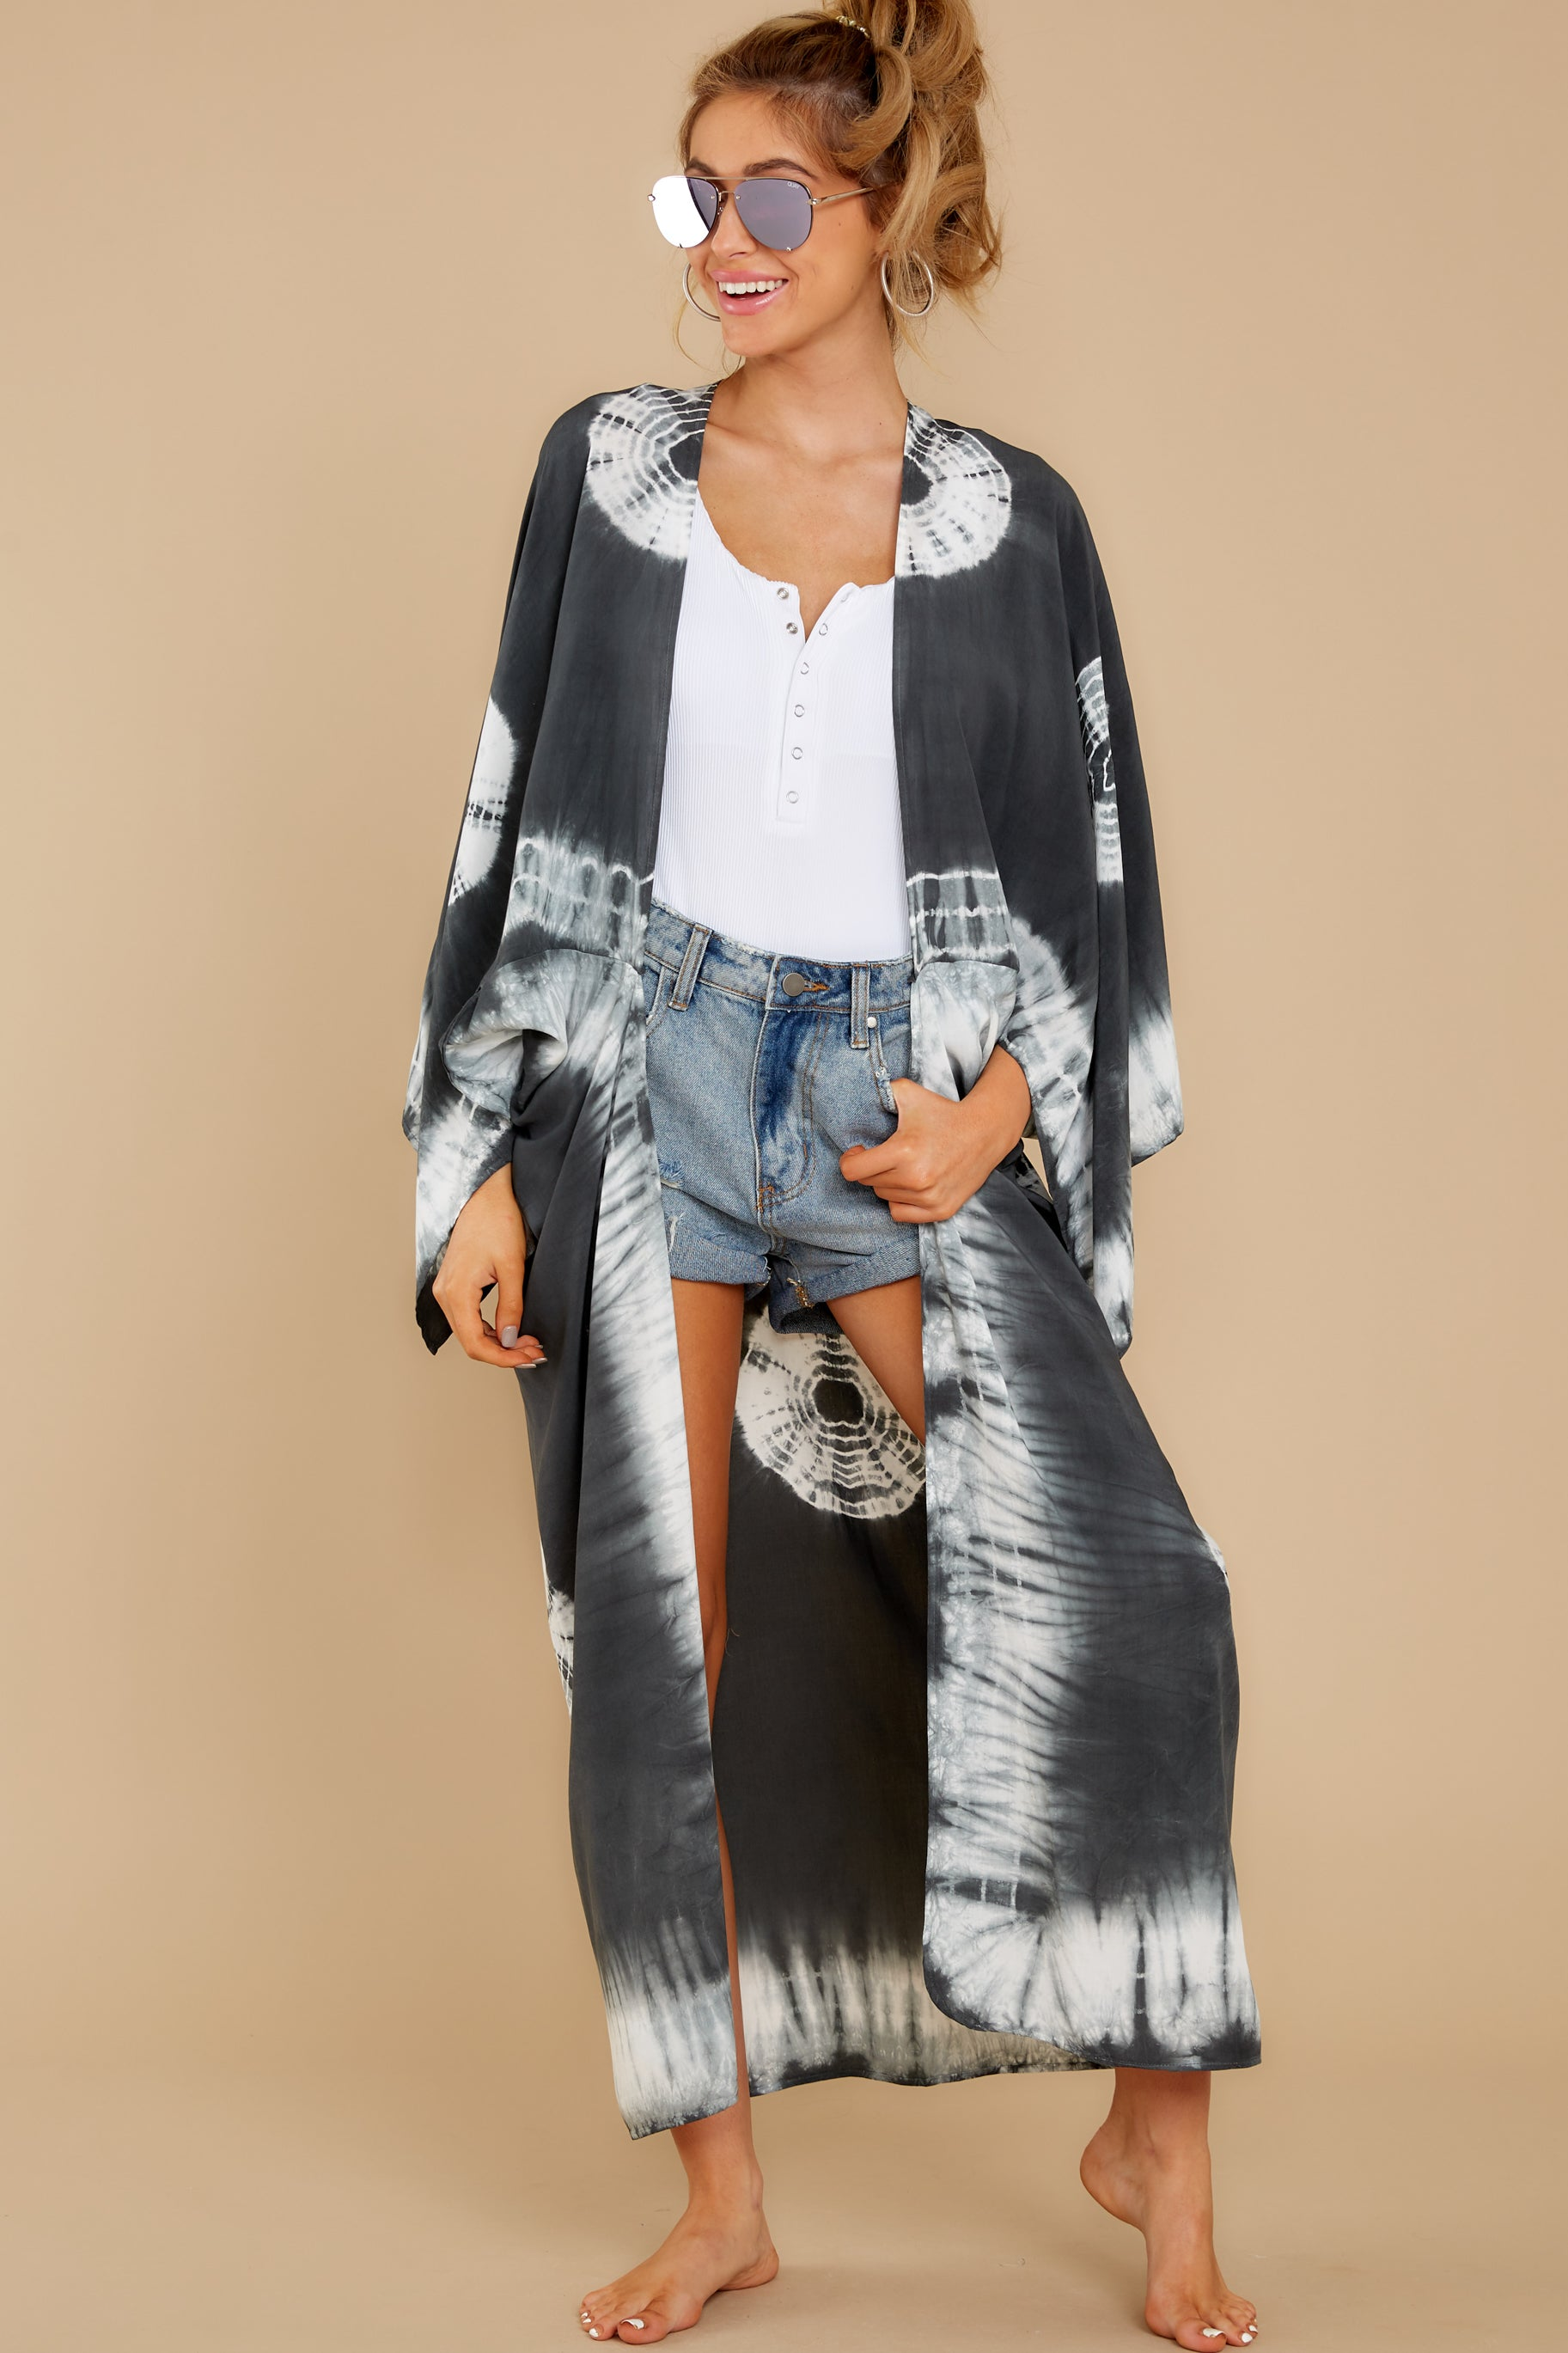 7 Focus On The Good Charcoal Tie Dye Kimono at reddress.com